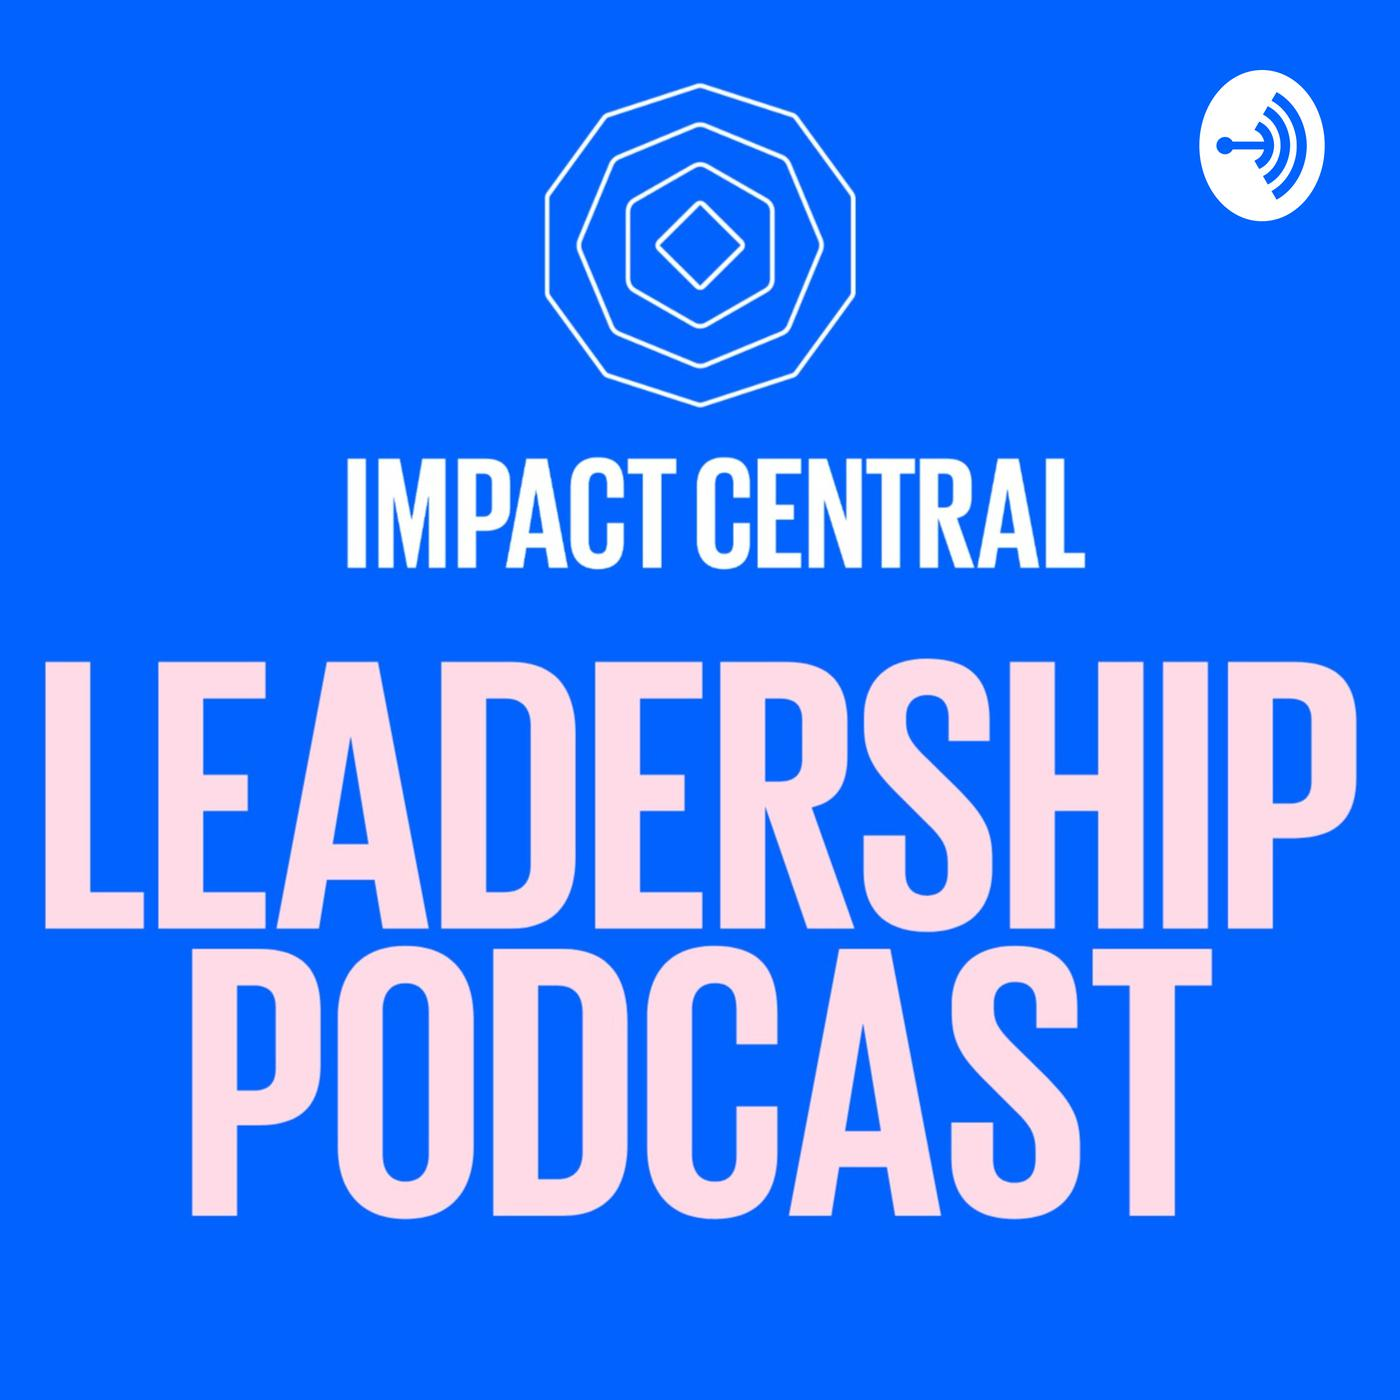 Impact Central Leadership Podcast